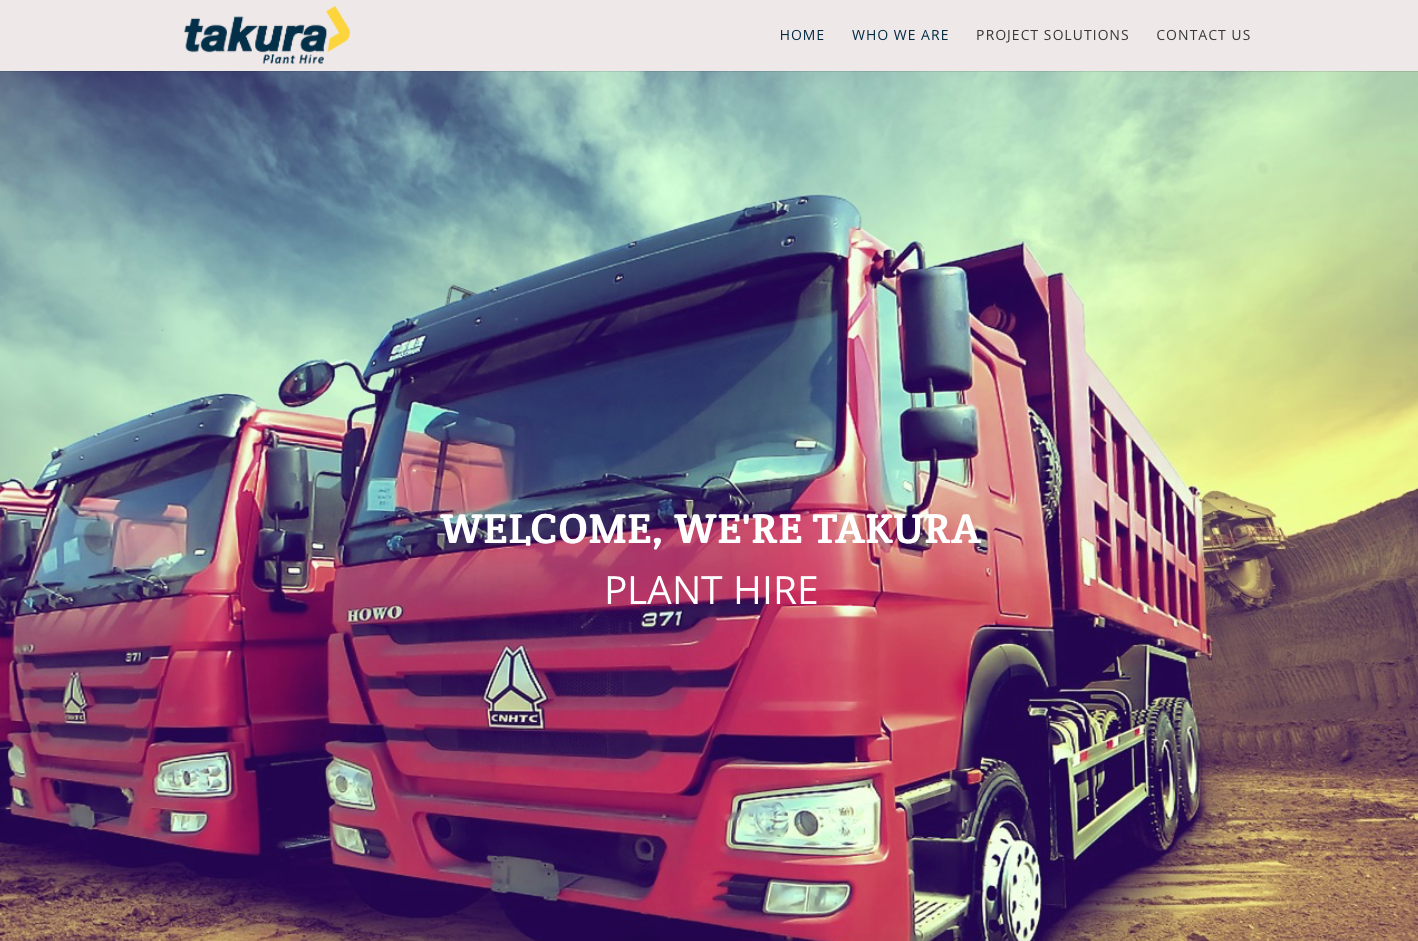 Takura website development